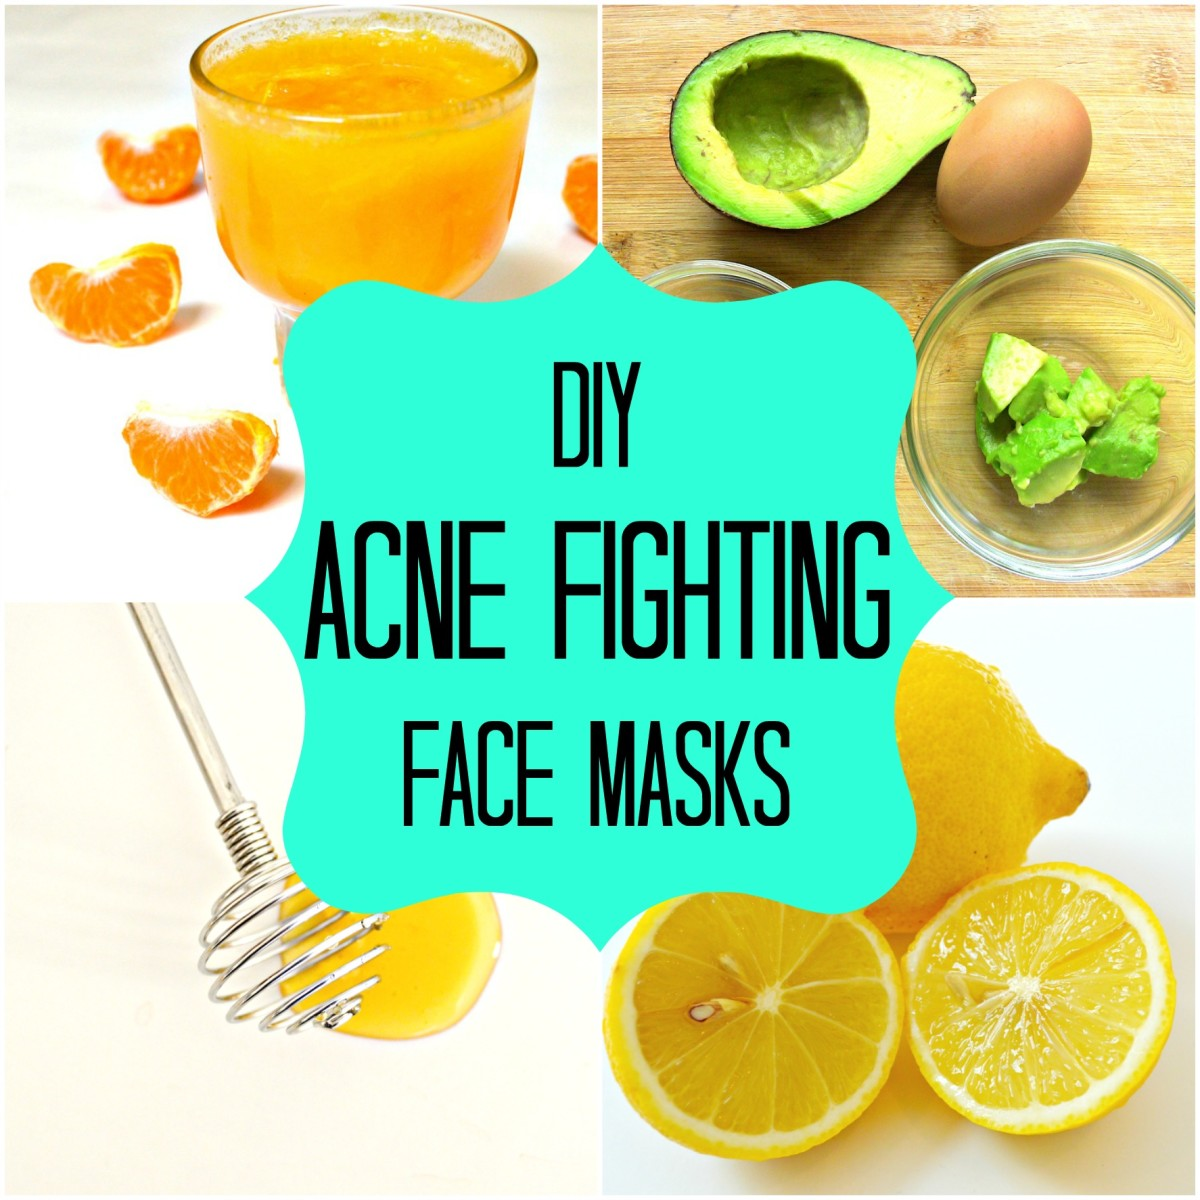 3 All Natural Diy Face Masks: DIY Natural Homemade Face Masks For Acne Cure